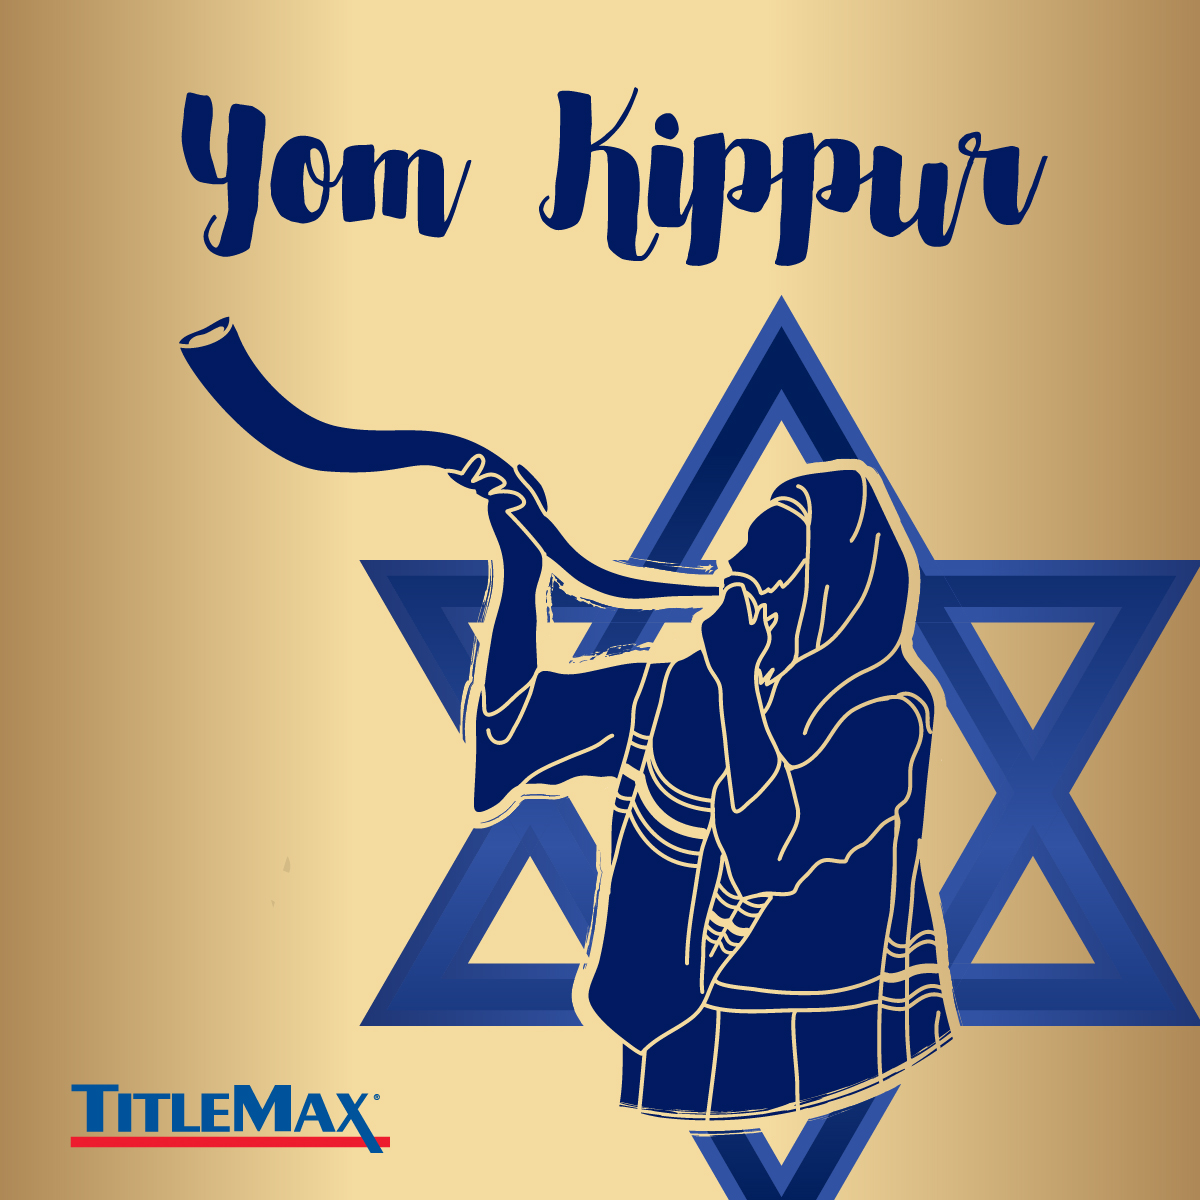 Have an easy fast on Yom Kippur